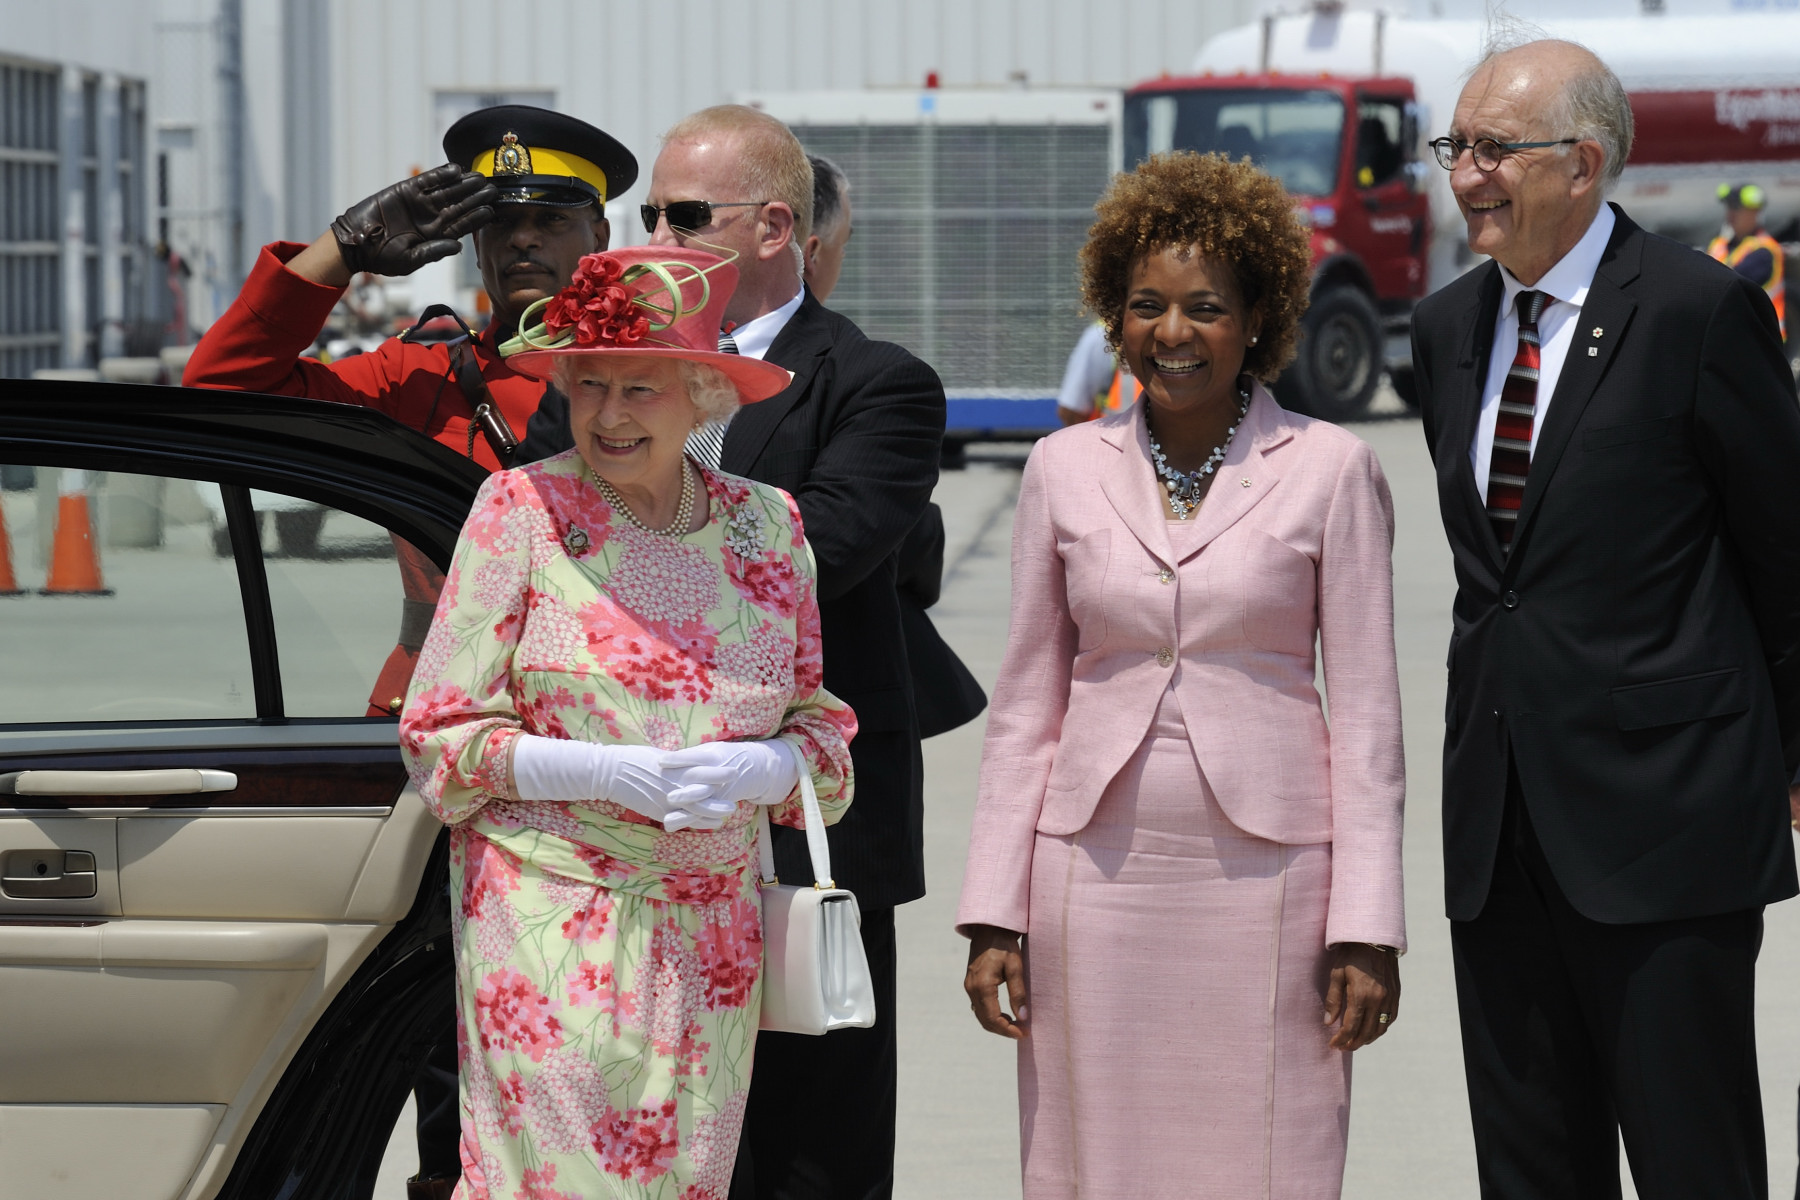 Their Excellencies also went to Toronto Pearson International Airport for the departure of Her Majesty The Queen and His Royal Highness The Duke of Edinburgh.